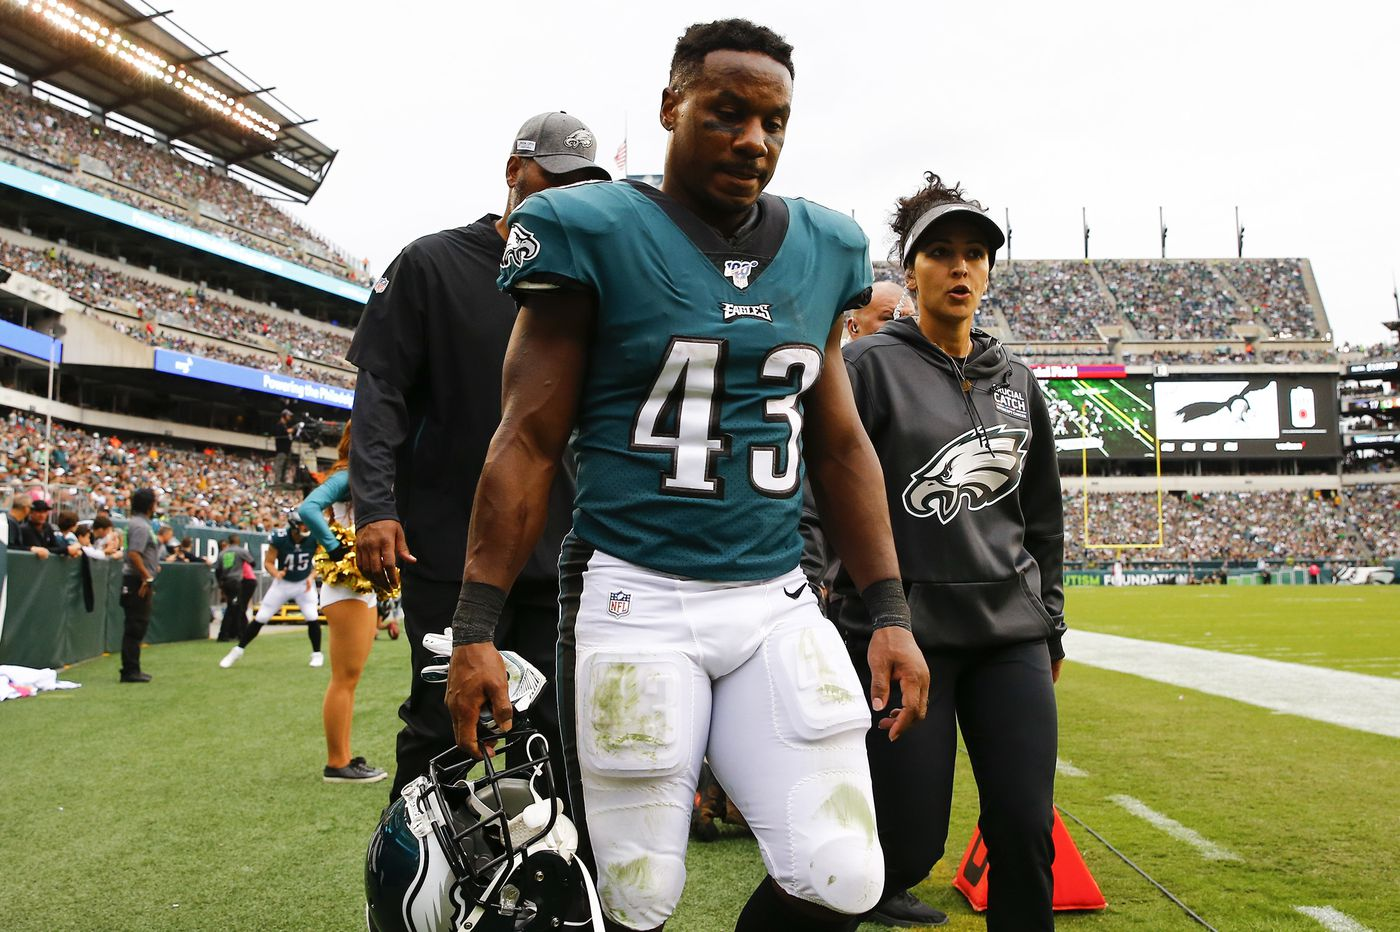 Eagles' Darren Sproles announces retirement after 14 NFL seasons